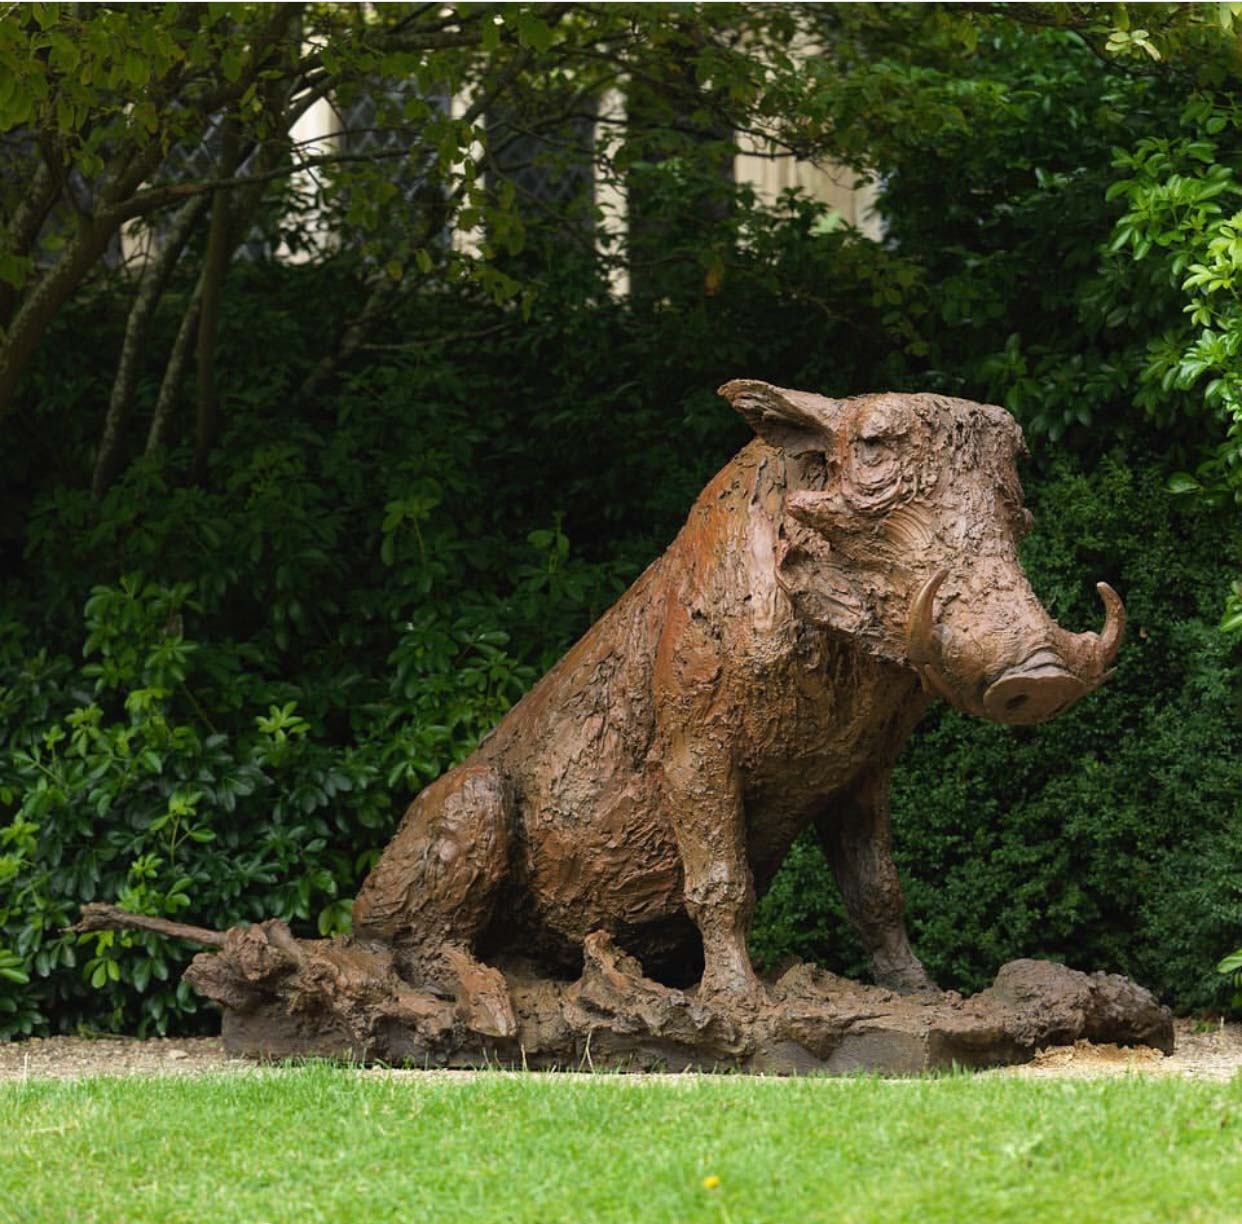 Outdoor Garden Bronze Art of Warthog Sculpture